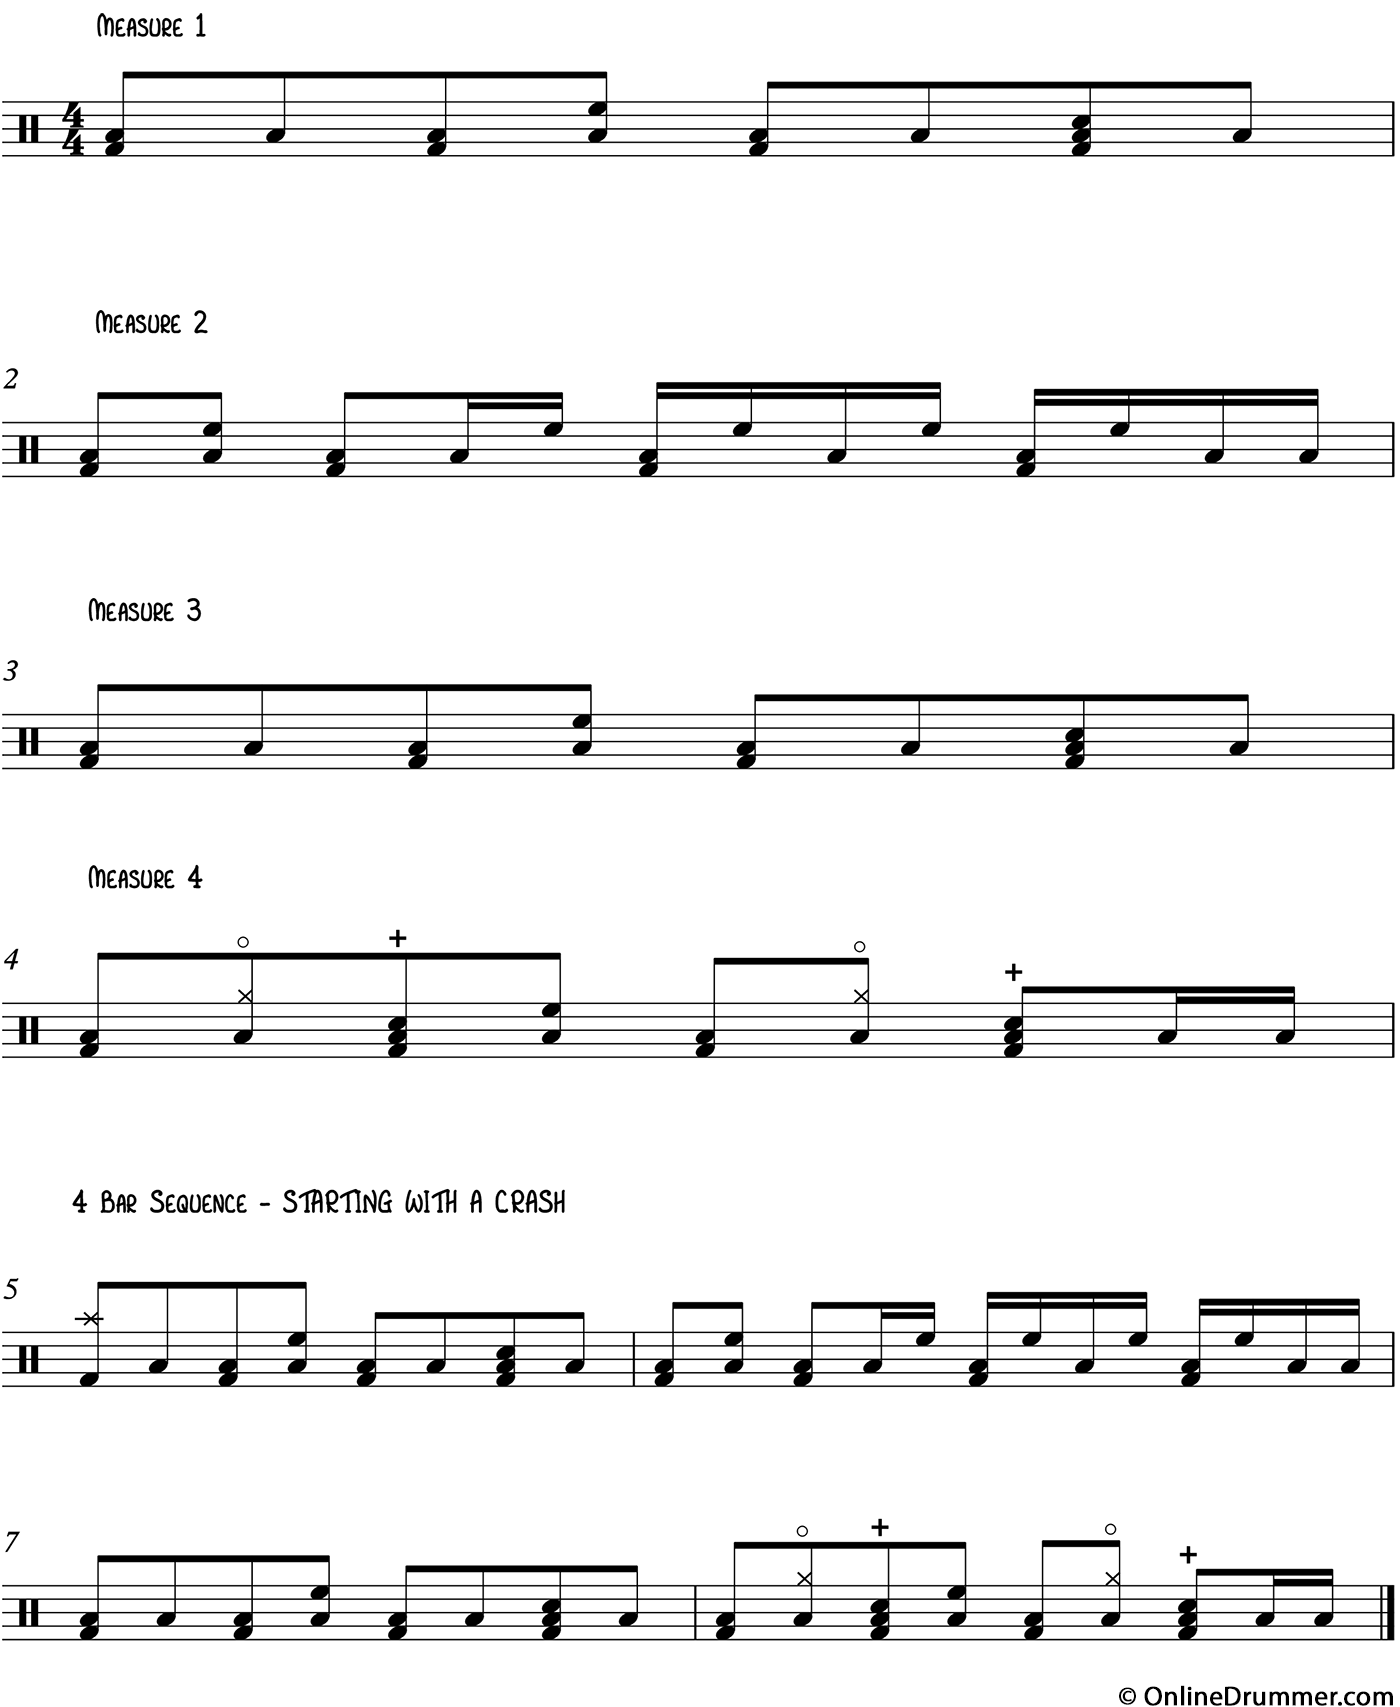 Cool Intermediate Drum Beats on the Toms